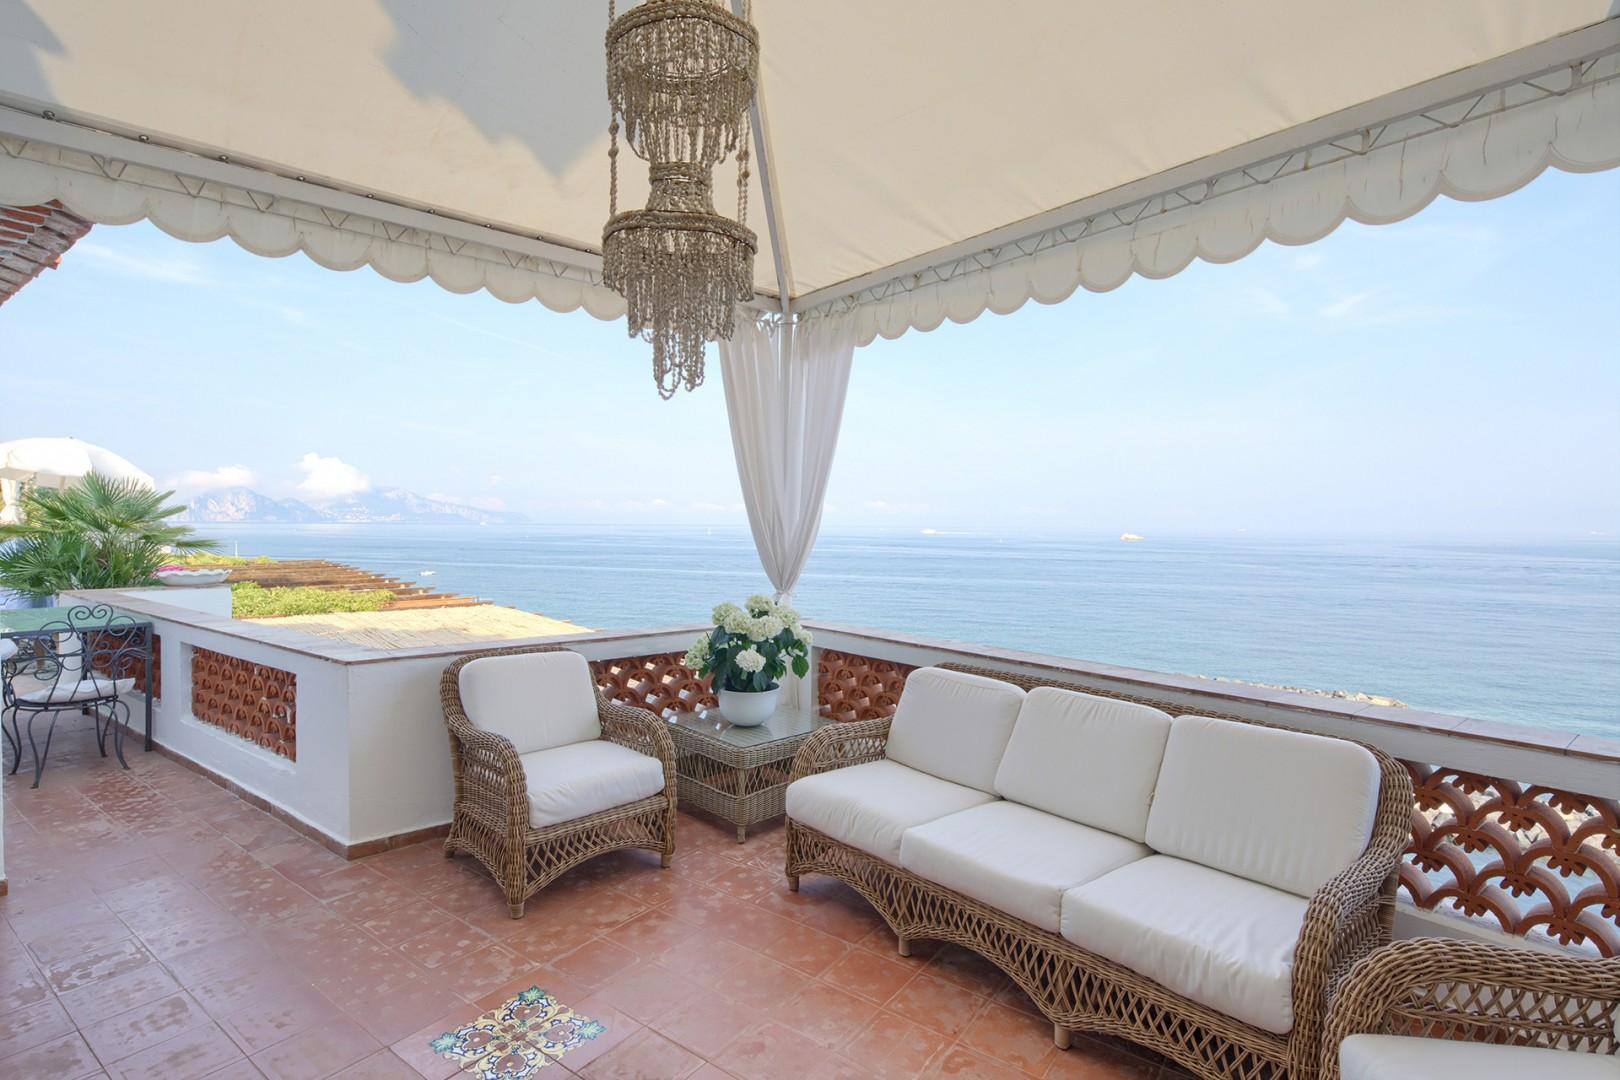 Relax to the sounds of the sea and views across to the legendary Isle of Capri.